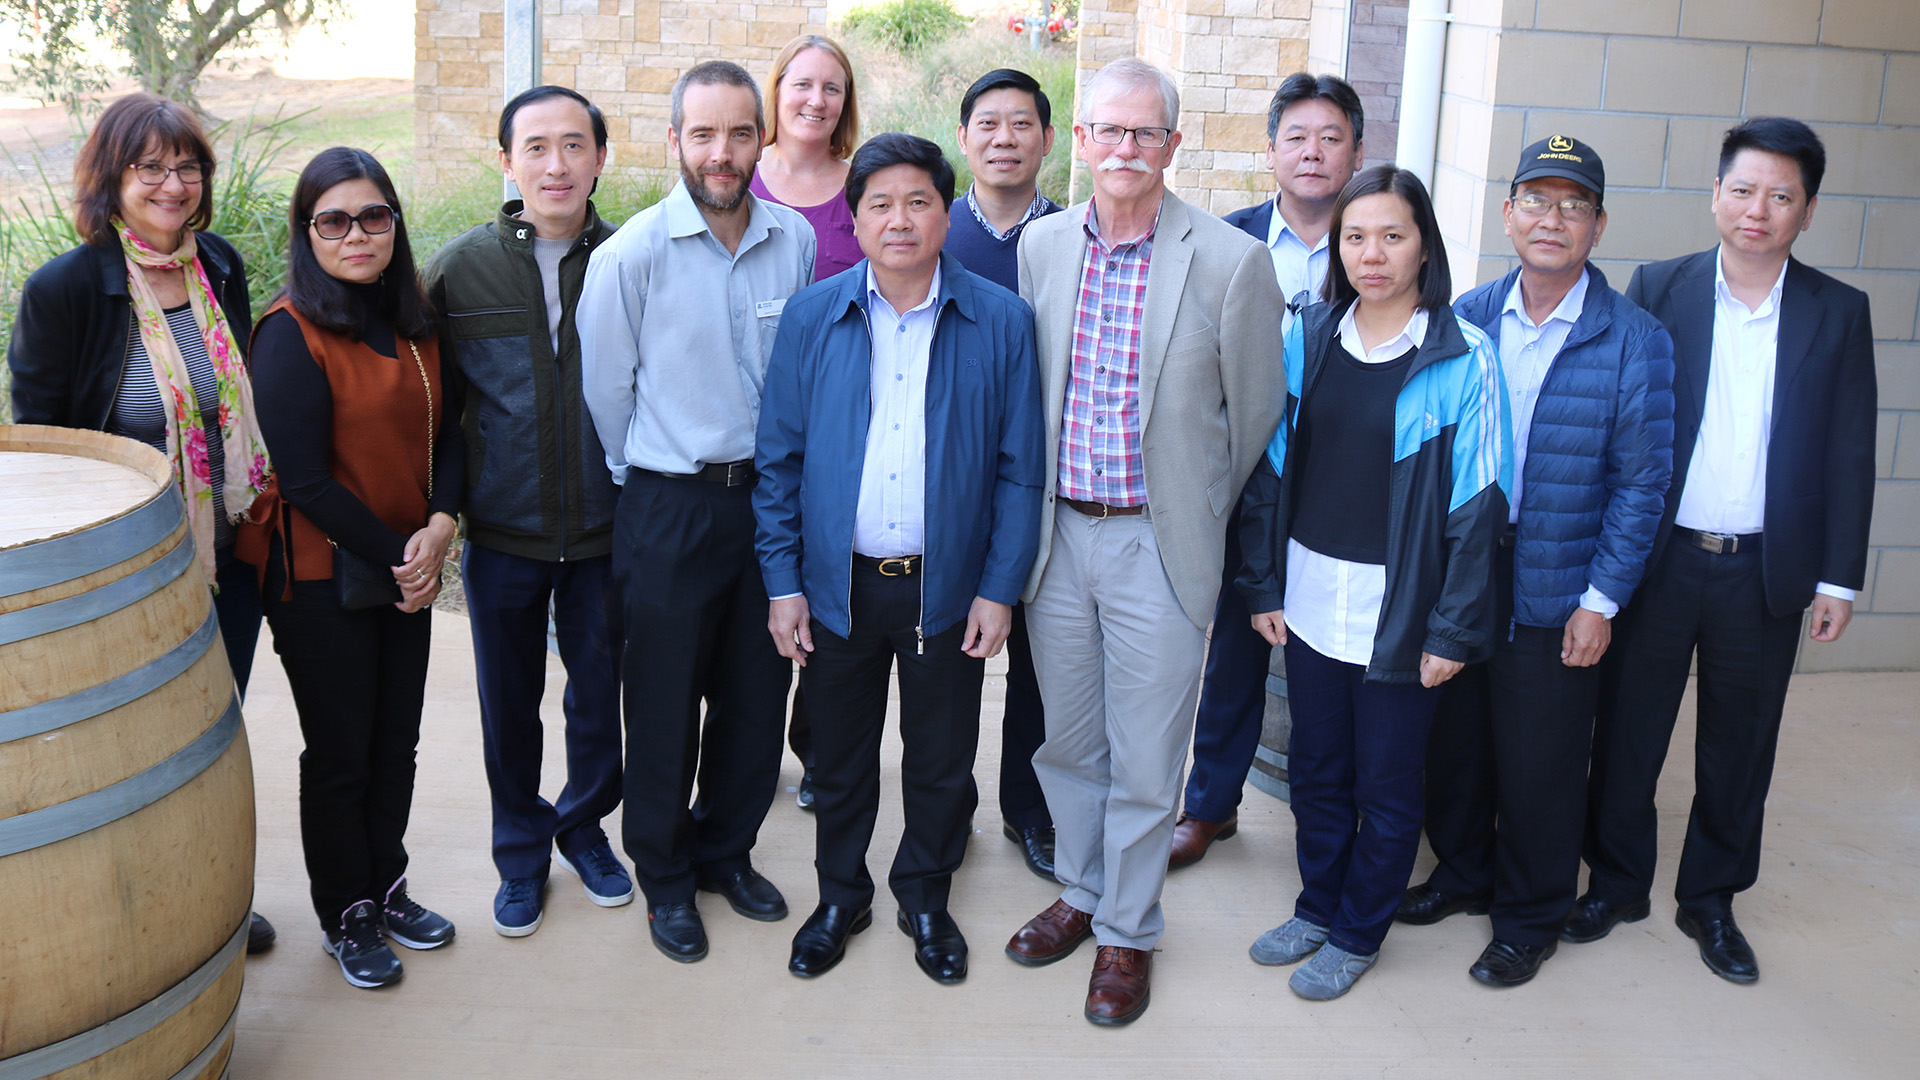 the delegation with Graham Centre members Dr Jason Condon and Professor John Mawson